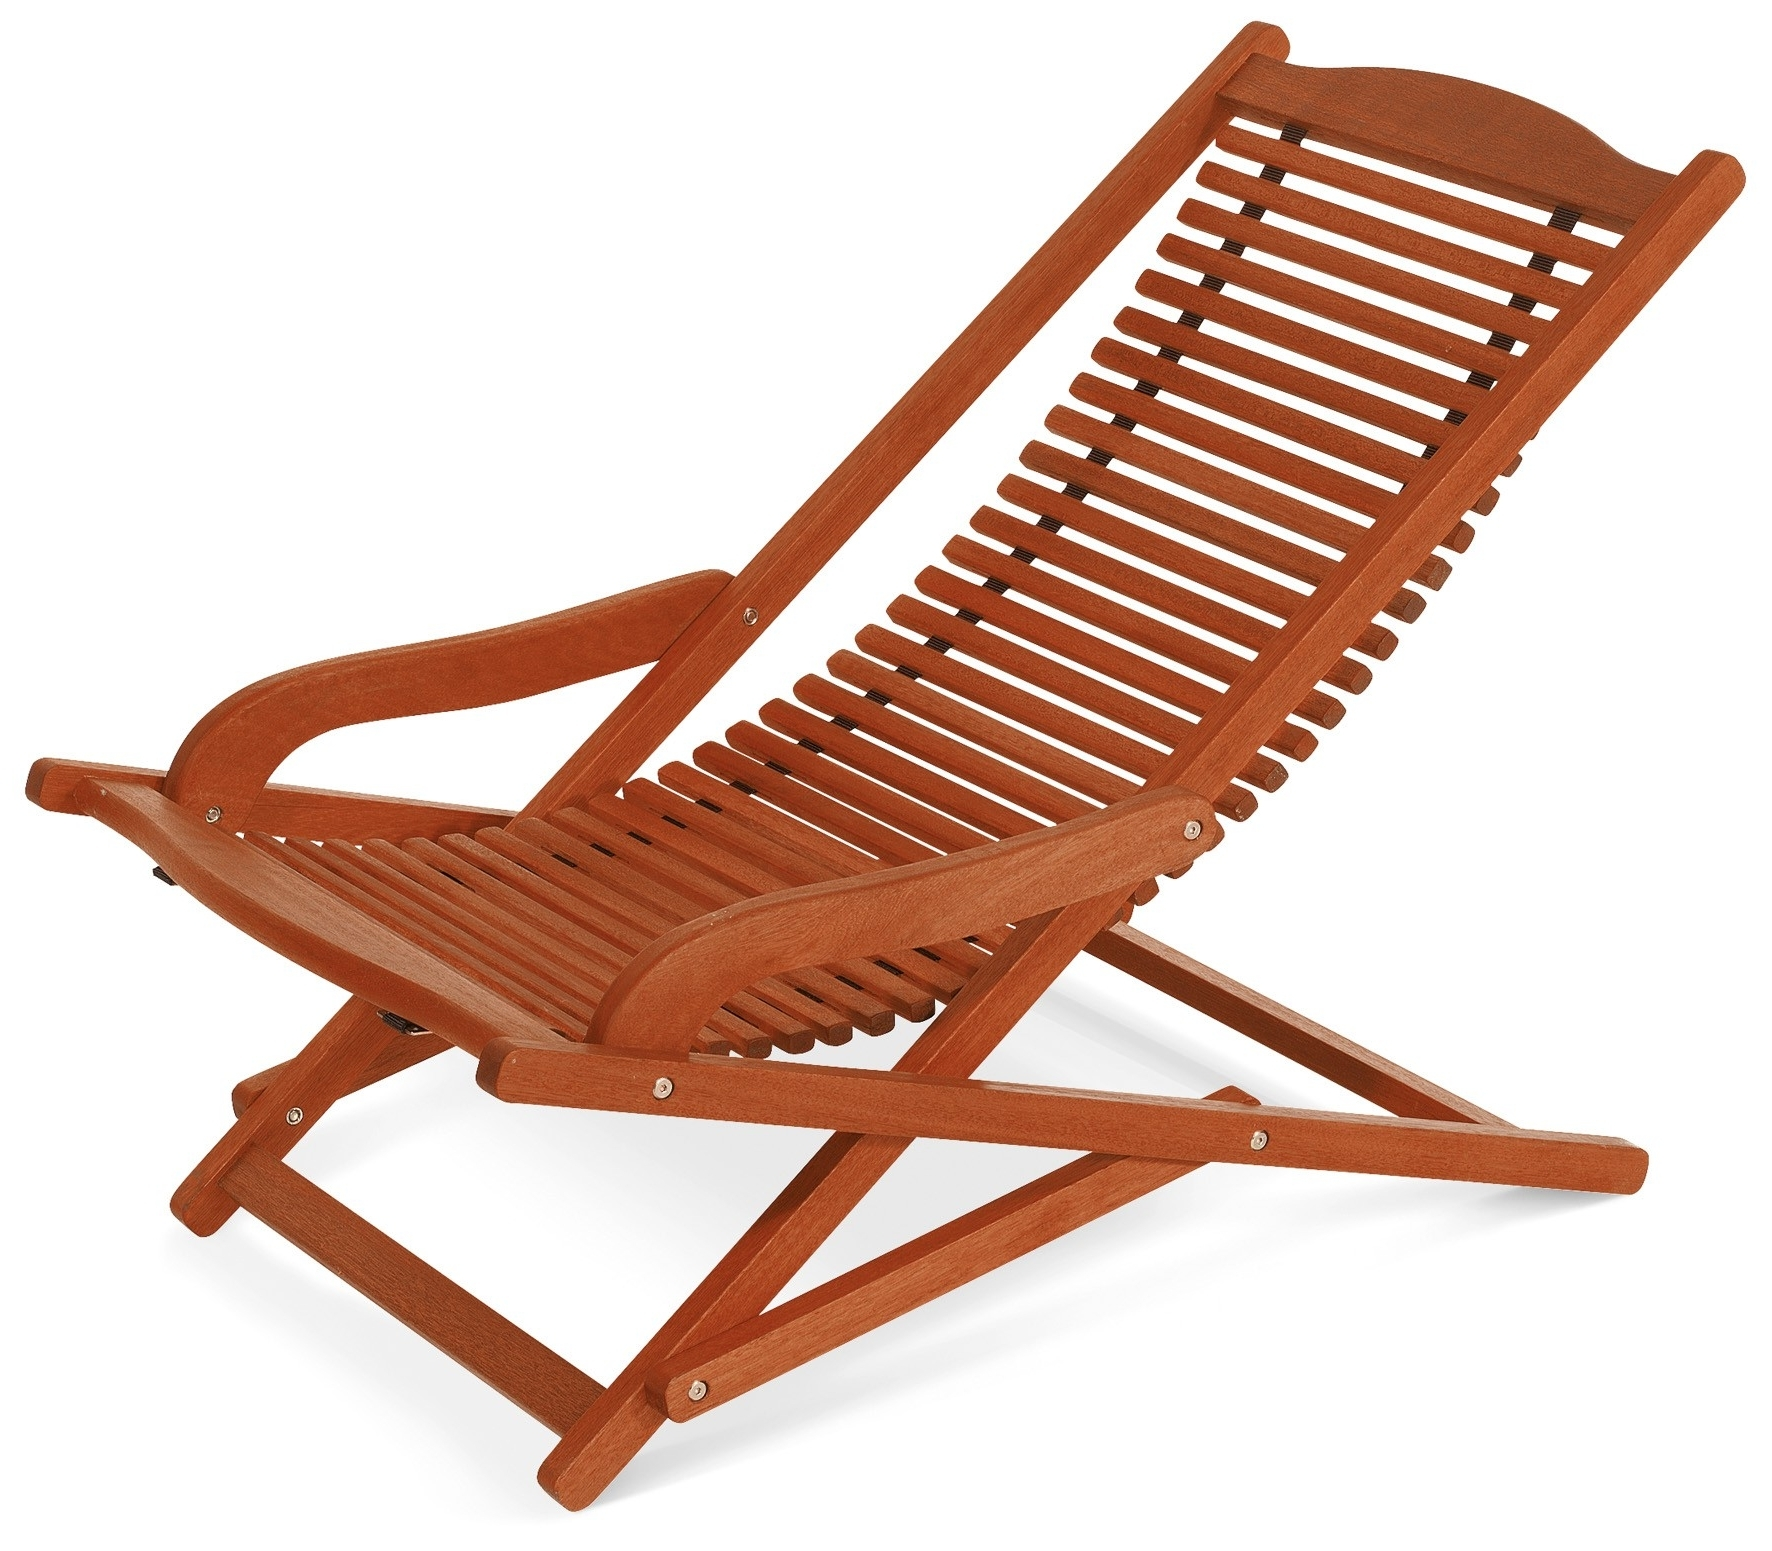 Outdoor : Cheap Lawn Chairs Plastic Lounge Chairs Indoor Wooden Throughout Recent Jelly Chaise Lounge Chairs (View 8 of 15)